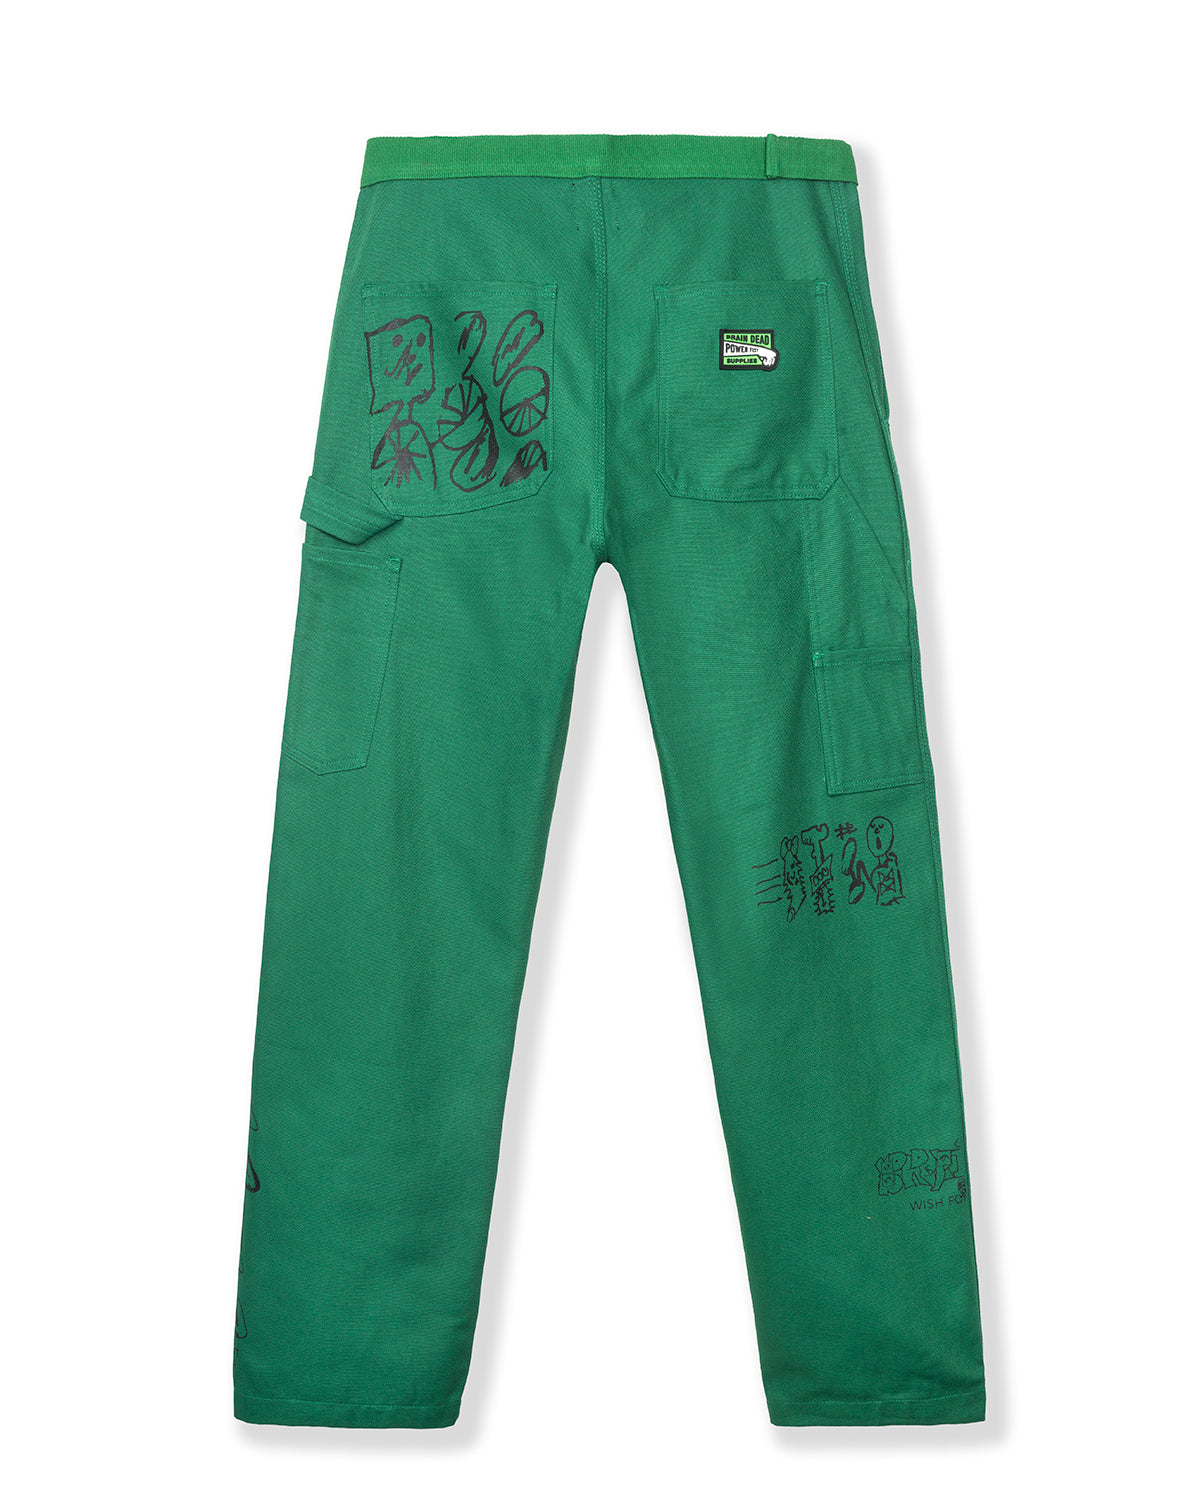 Hard/Software Velcro Printed Carpenter Pant - Forest Green